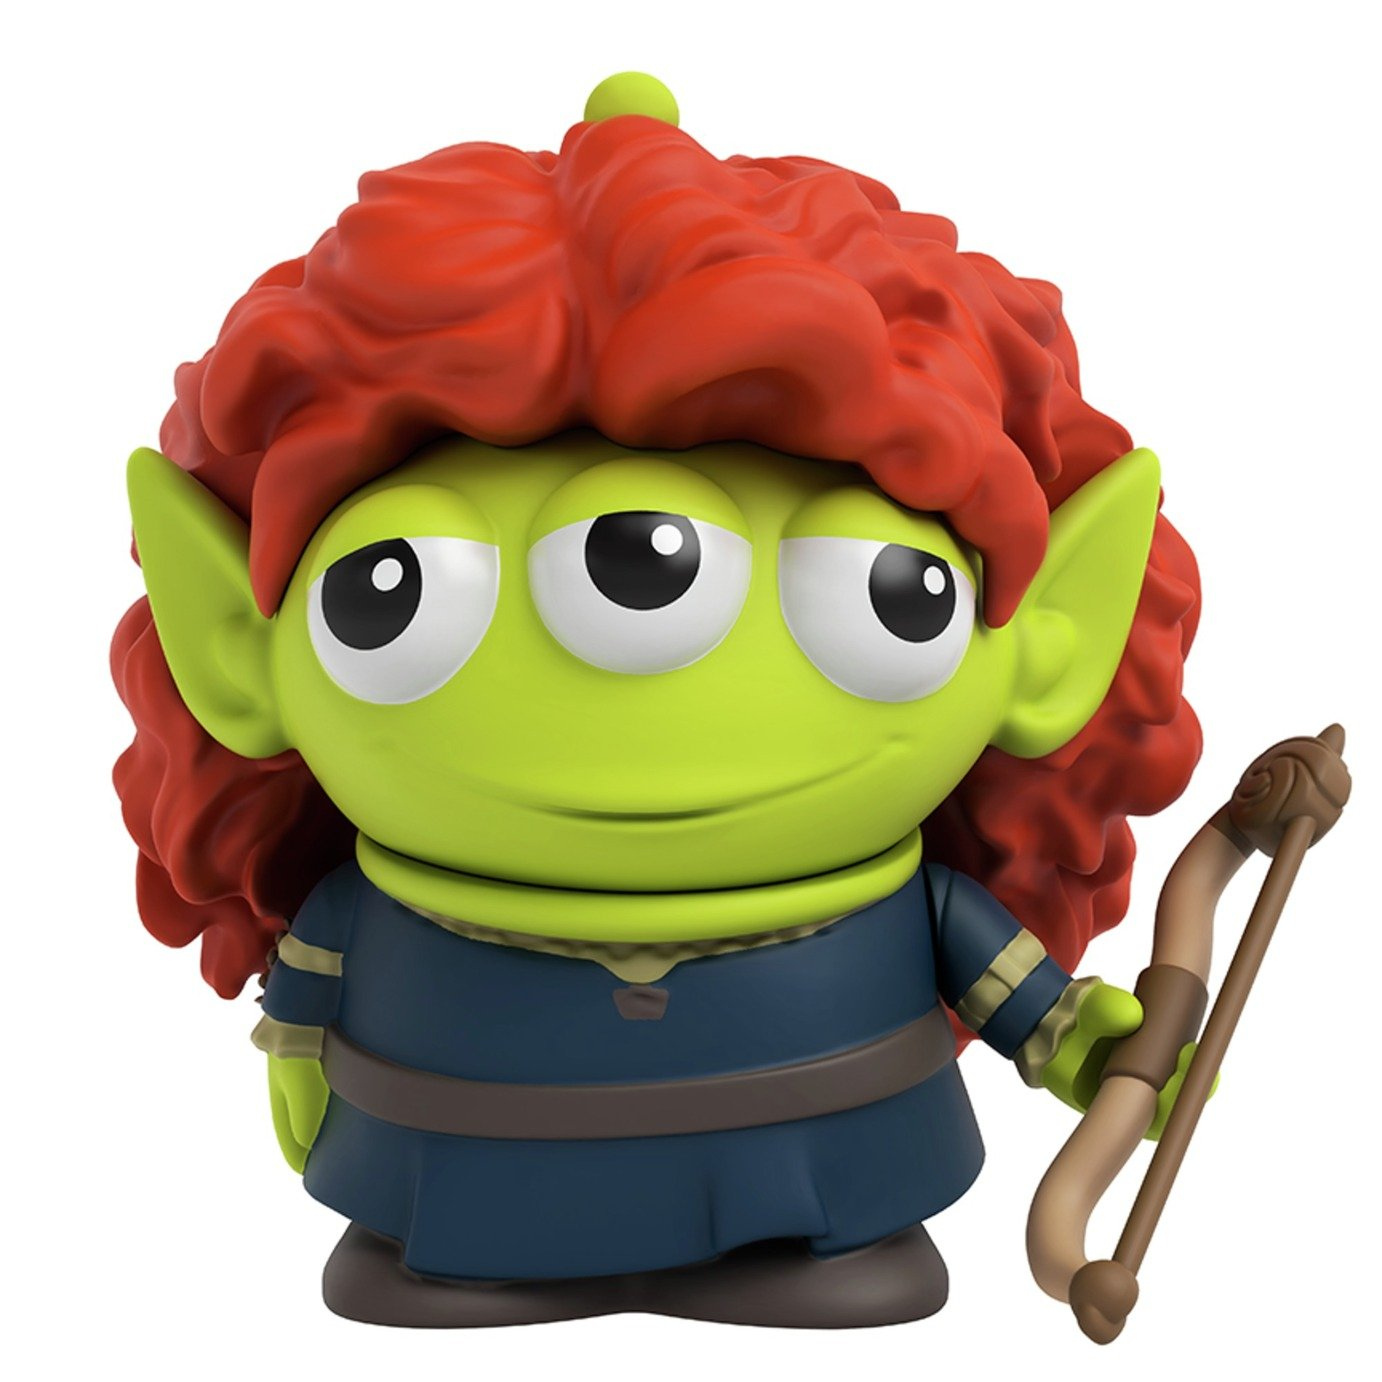 Disney Pixar Alien Dress-Up - Merida Figure